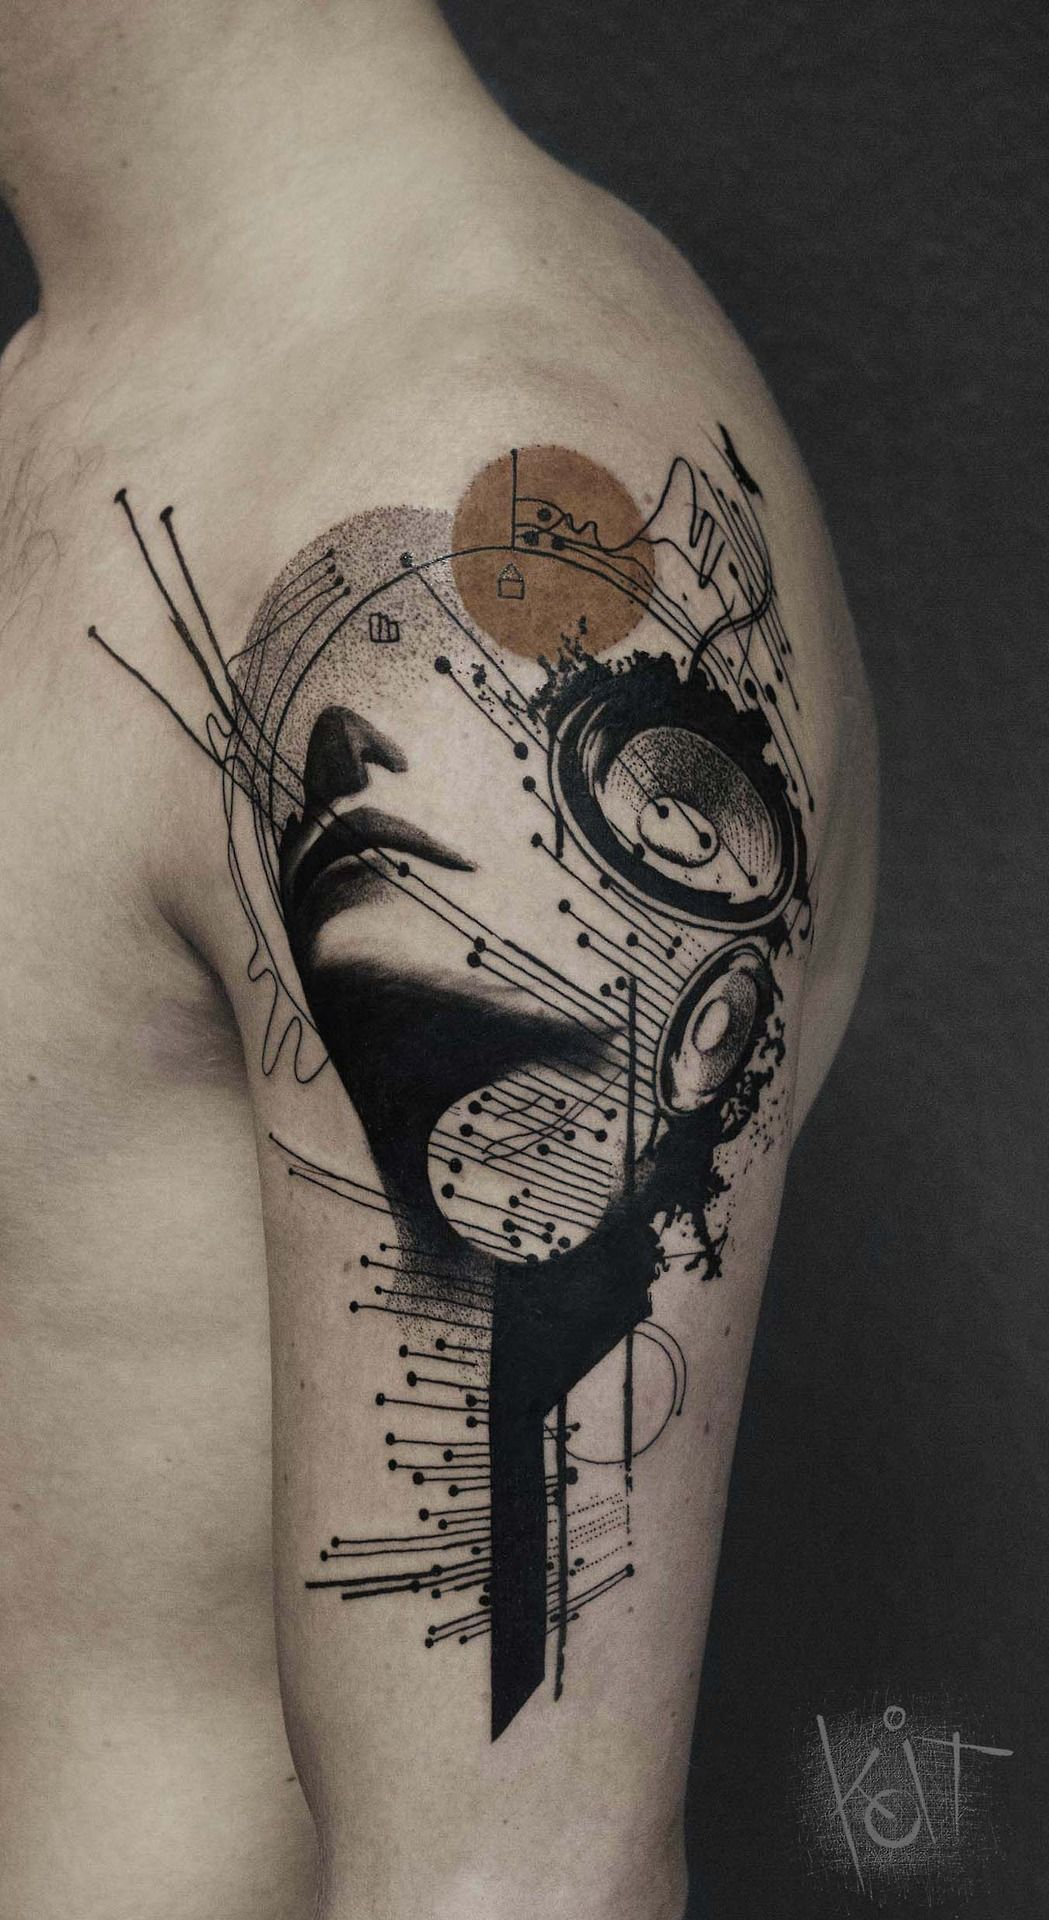 Koit Tattoo Berlin Graphic Style Music Theme Arm Tattoo Ideas And Designs